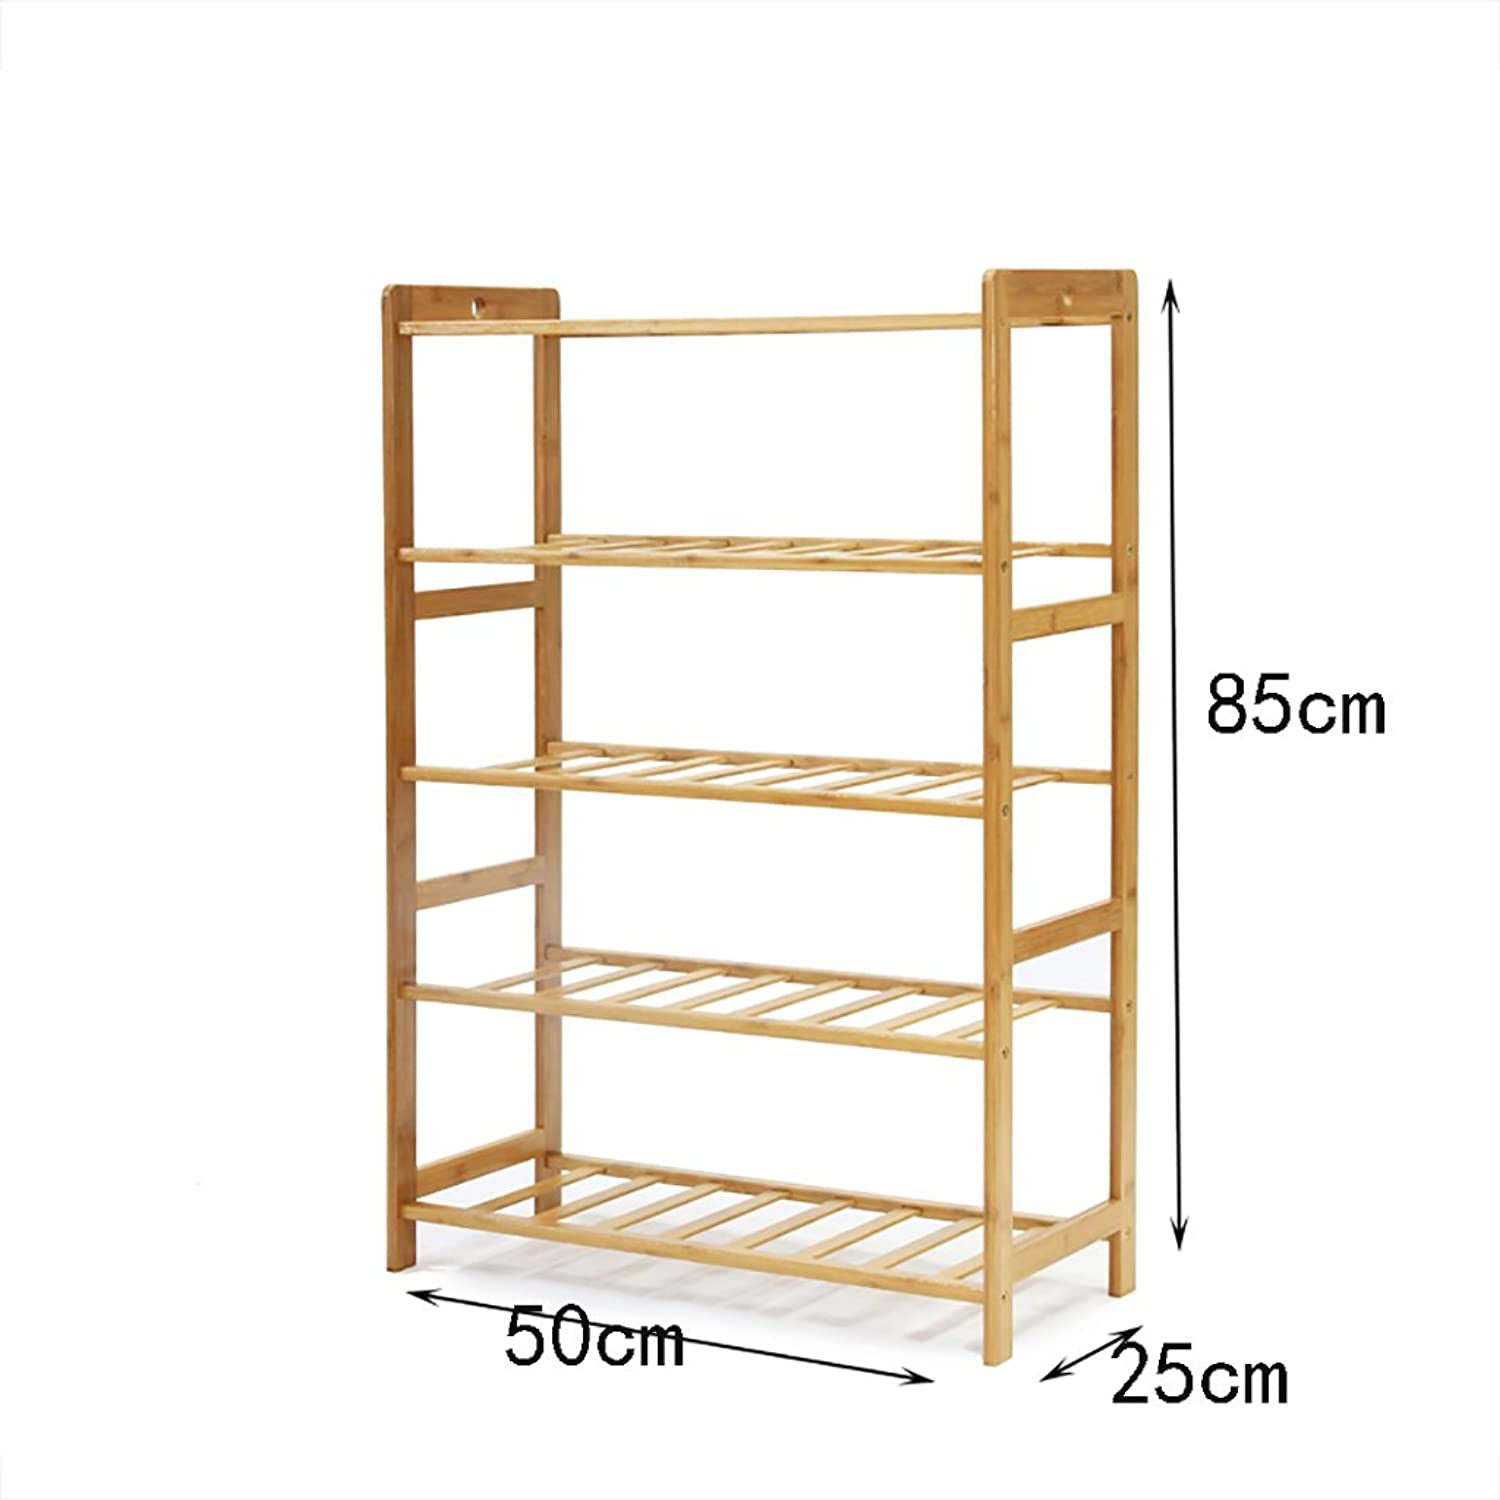 shoes Bench Organizing Rack shoes Racks Bamboo shoes Shelves Flat shoes Display Stand Home Door shoes Rack Solid Wood shoes Cabinet (color   D, Size   50cm)